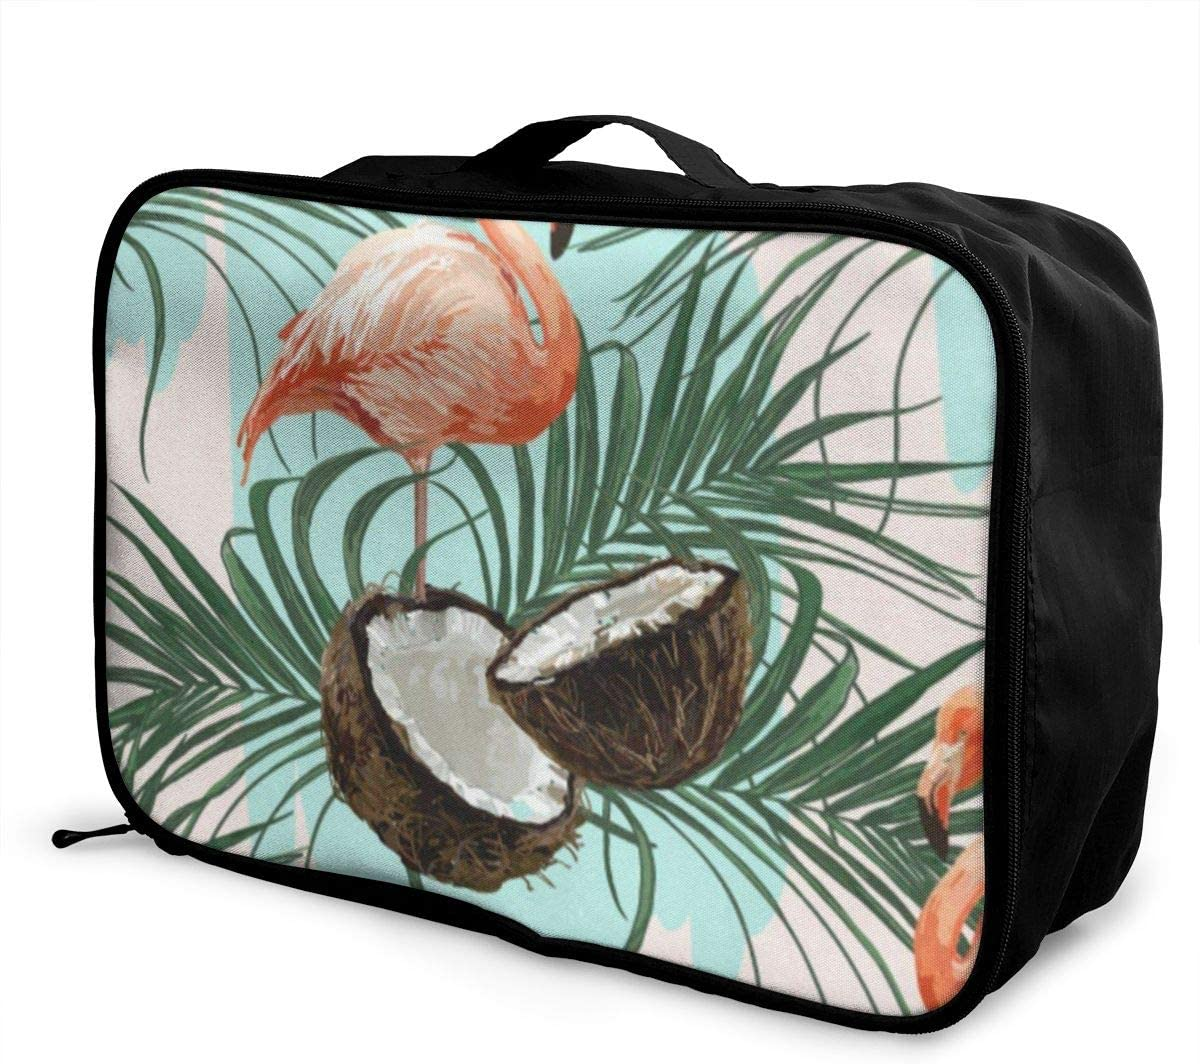 Travel Bags Flamingo Coconut Portable Tote Custom Personalized Trolley Handle Luggage Bag